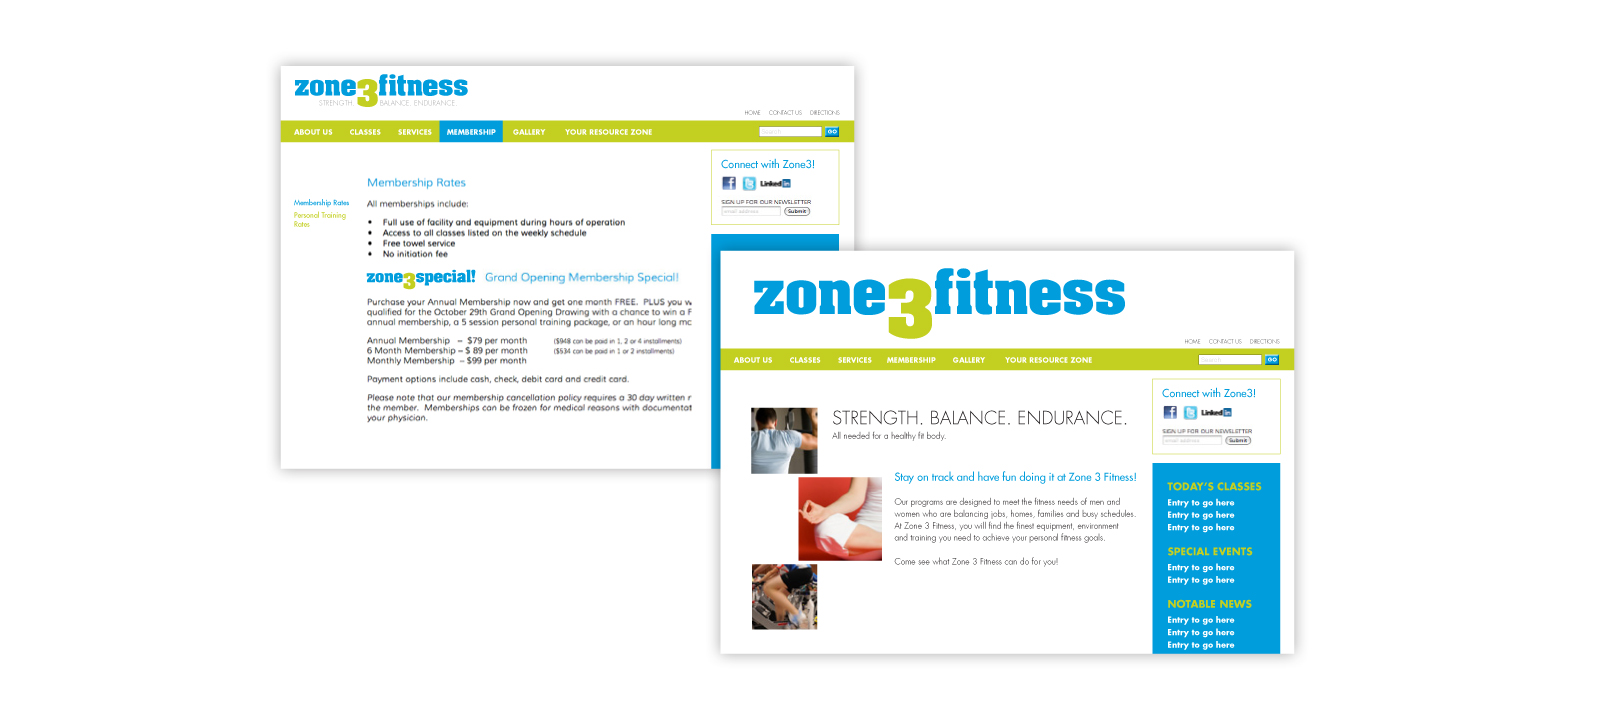 Zone 3 Fitness Website Design